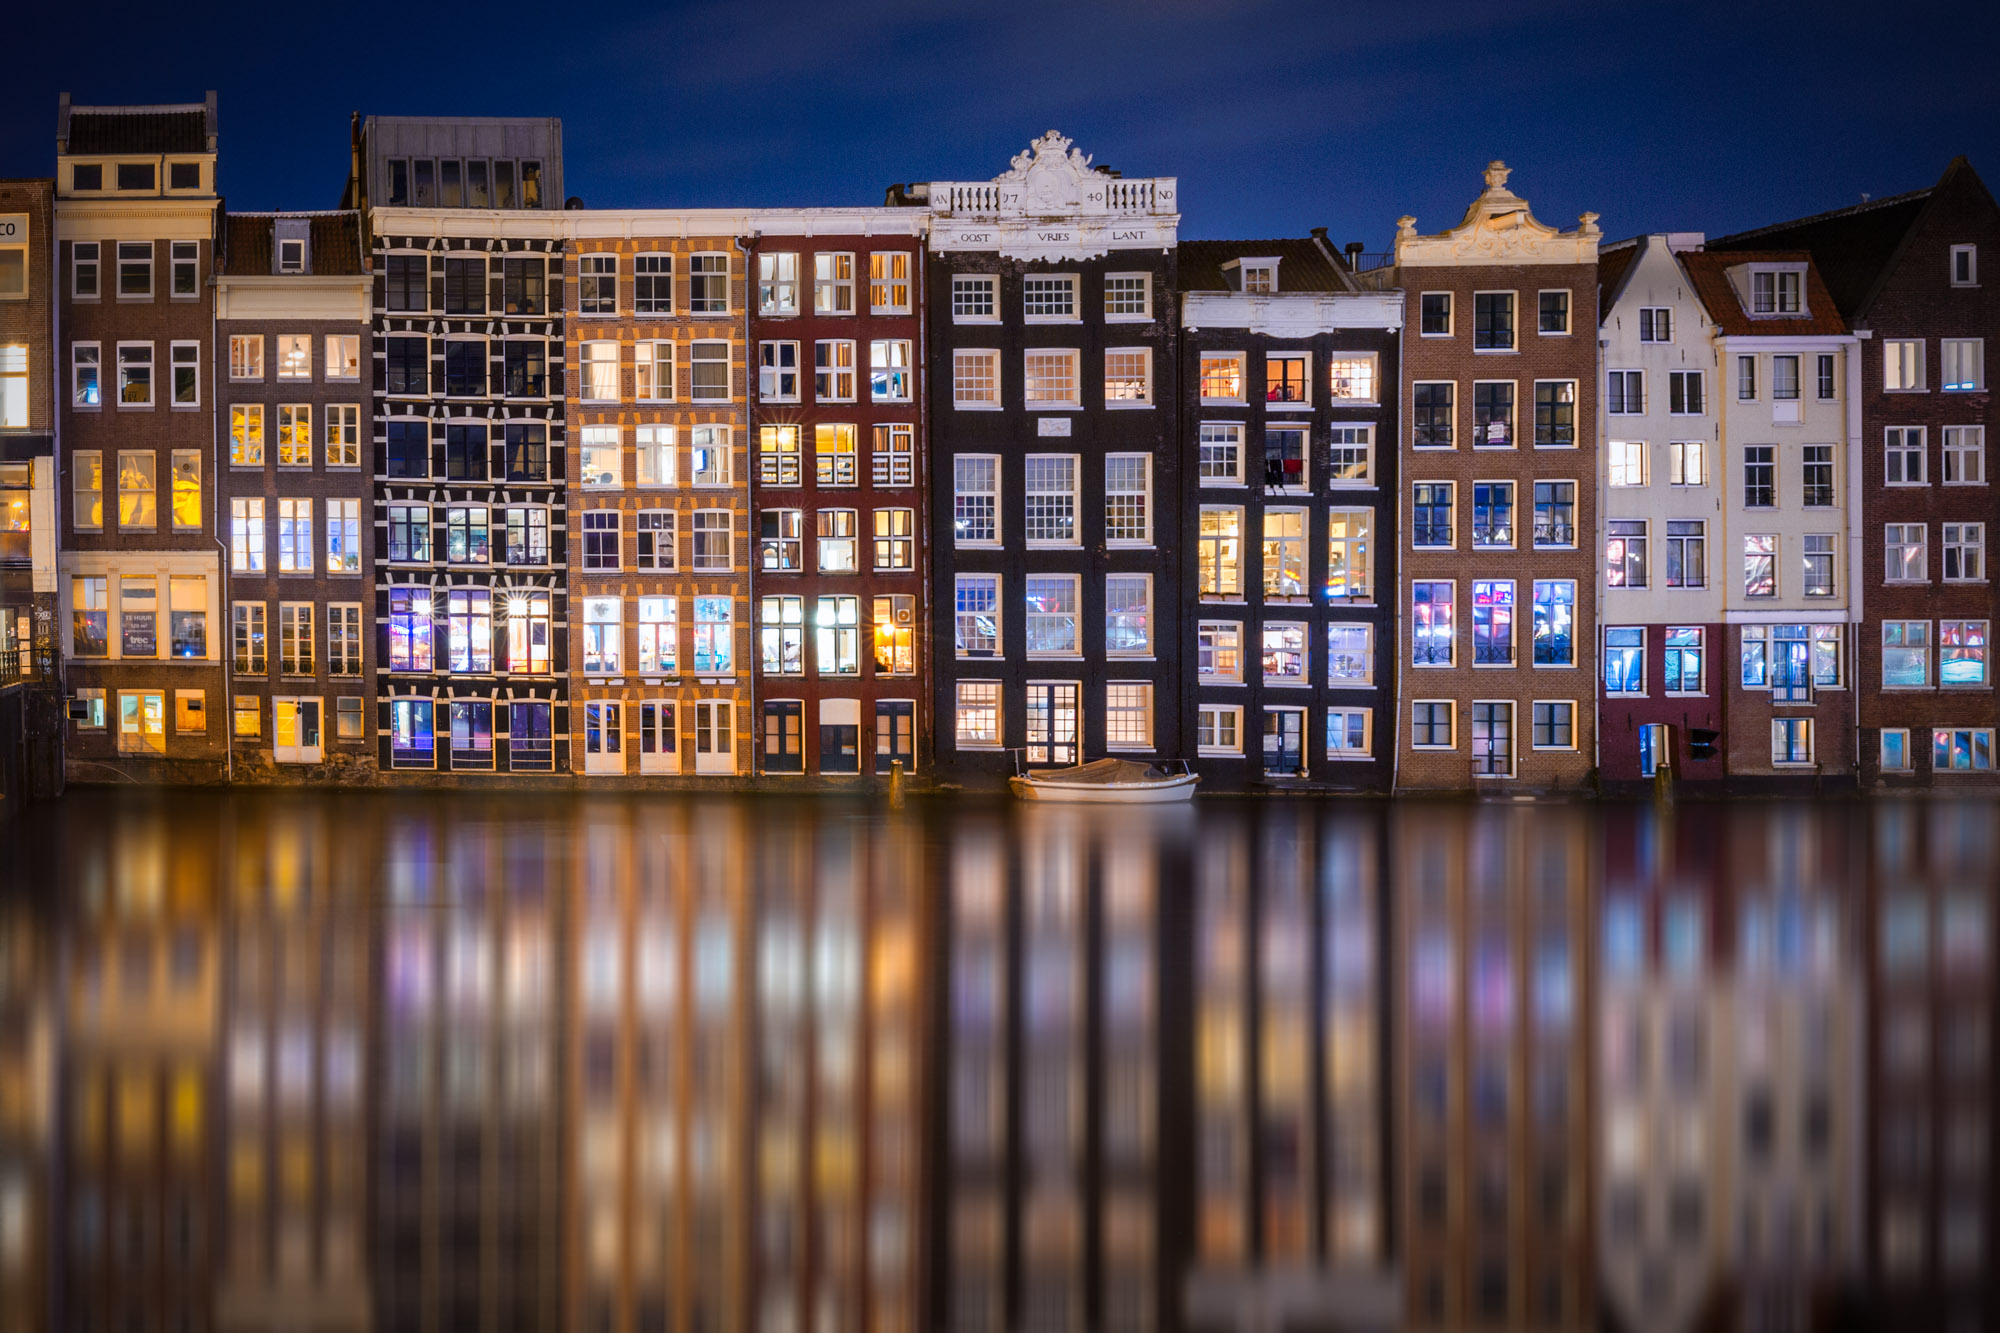 long exposure photography of the architecture reflected in a canal in Amsterdam at night in The Netherlands